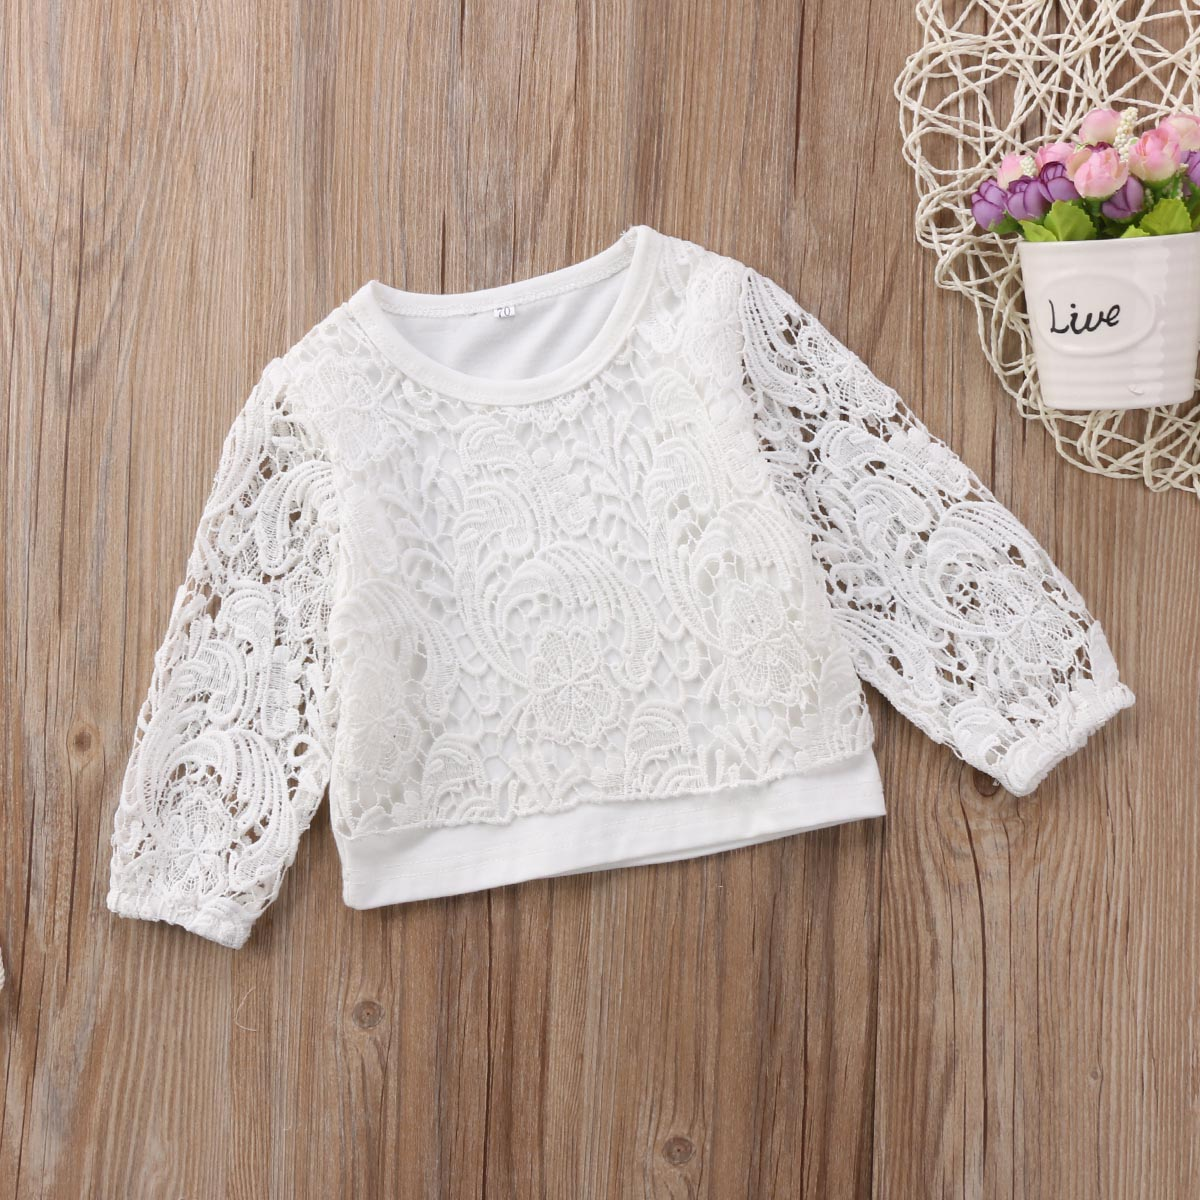 Toddler Kids Baby Girls Hollow Lace Long Sleeve T-Shirt Blouse Tops Outfit